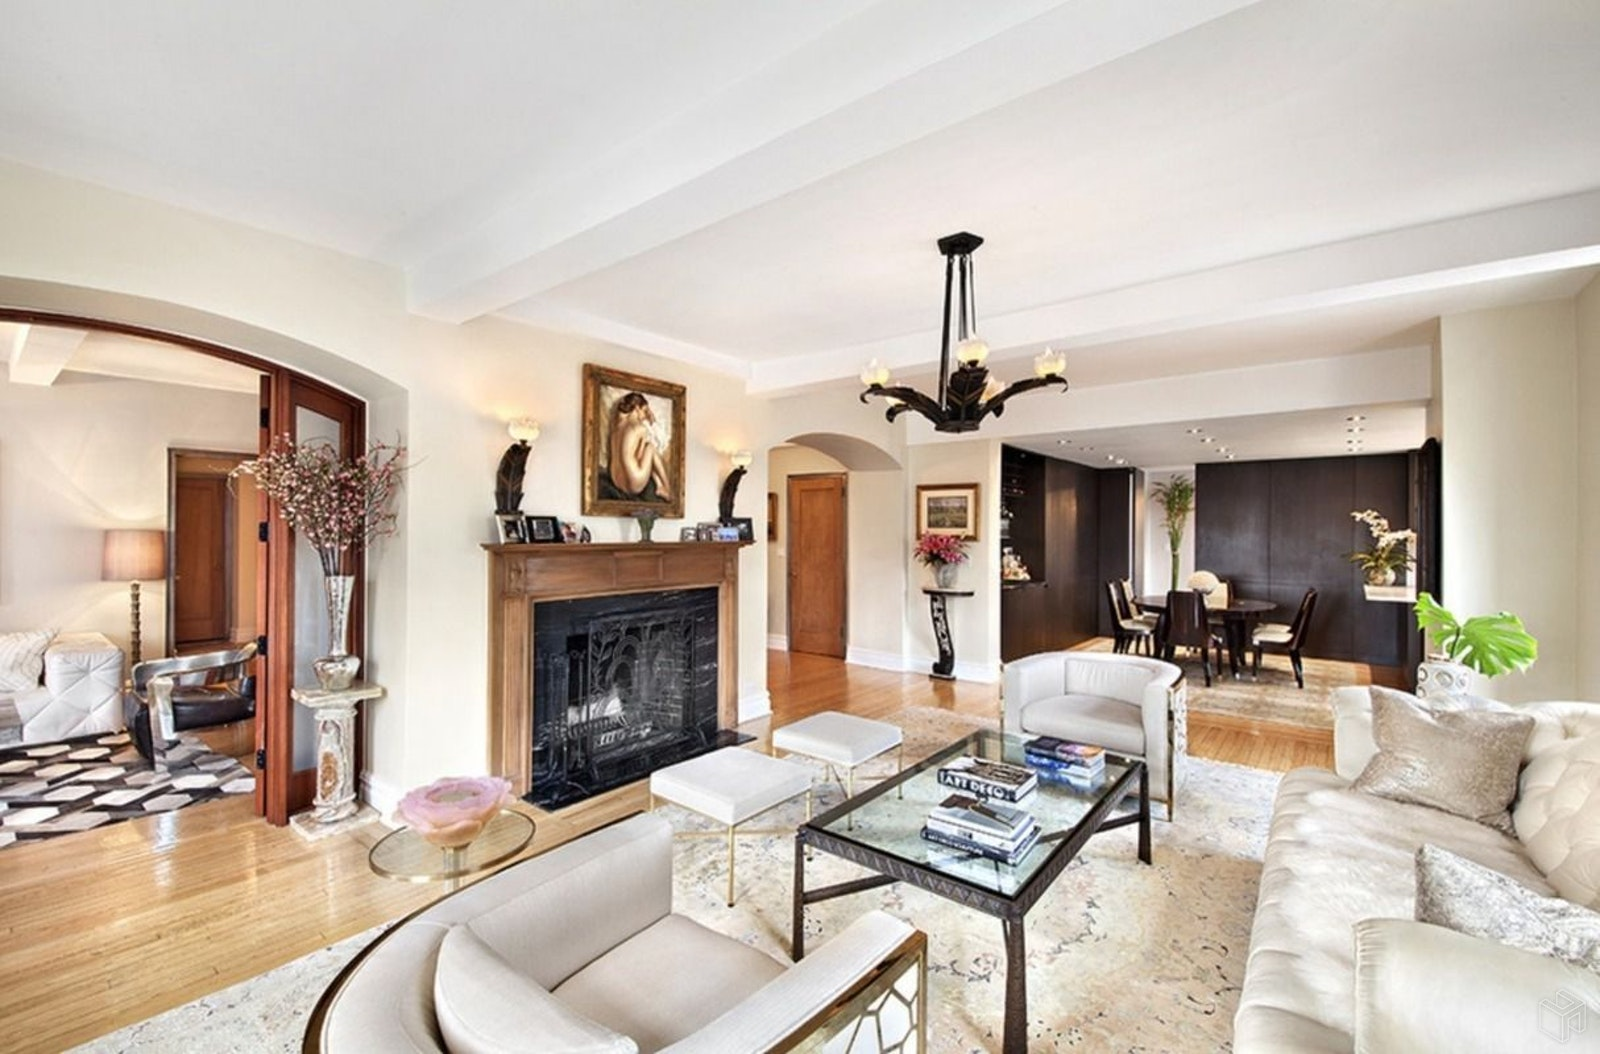 Huge 4 Bed Masterpiece W/ Great Views, Chelsea, NYC, 10011, $7,900,000, Property For Sale, Halstead Real Estate, Photo 1